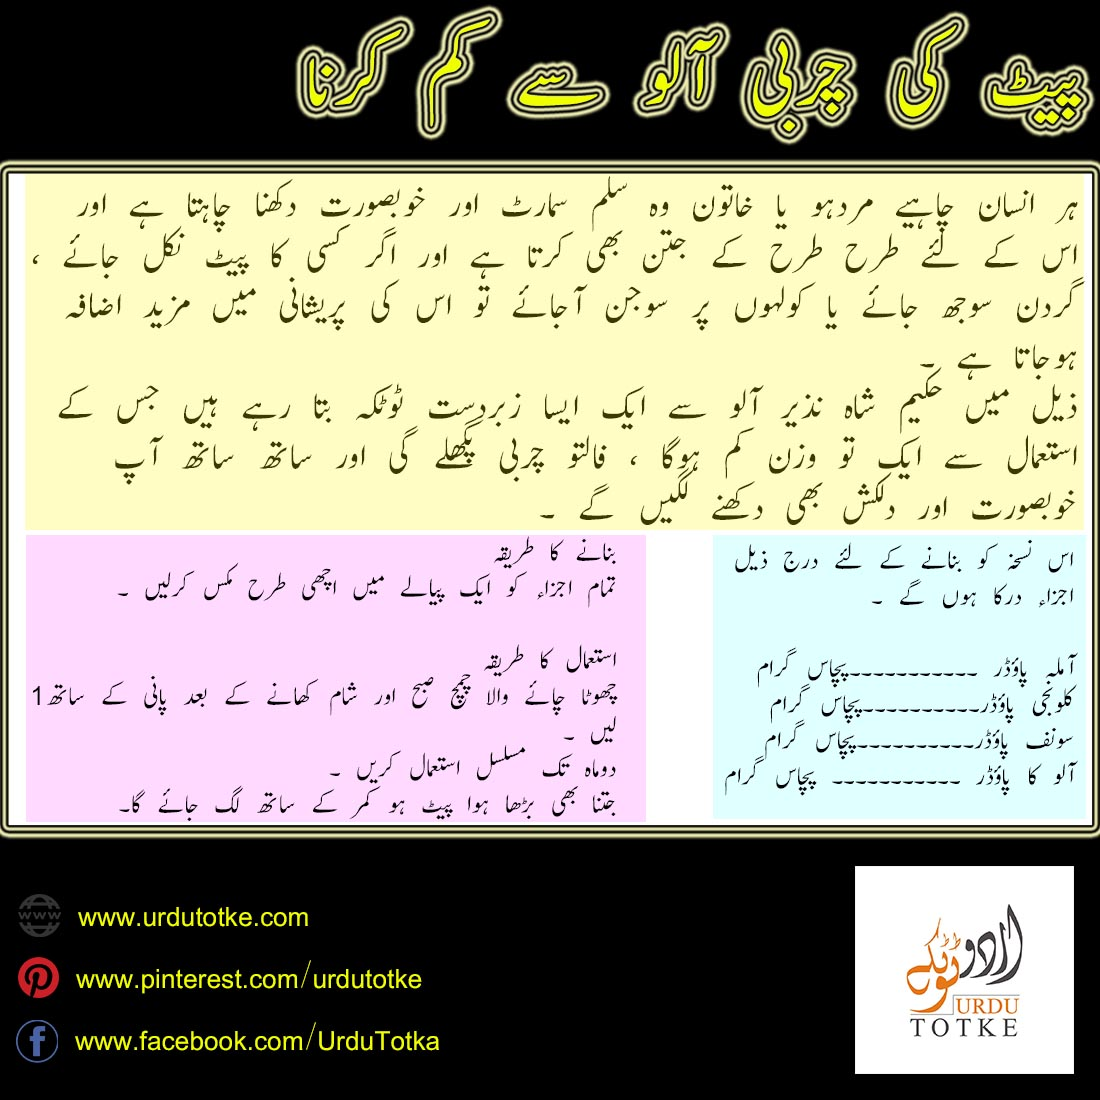 How to Reduce Belly Fat in Urdu - Urdu Totke - photo#36